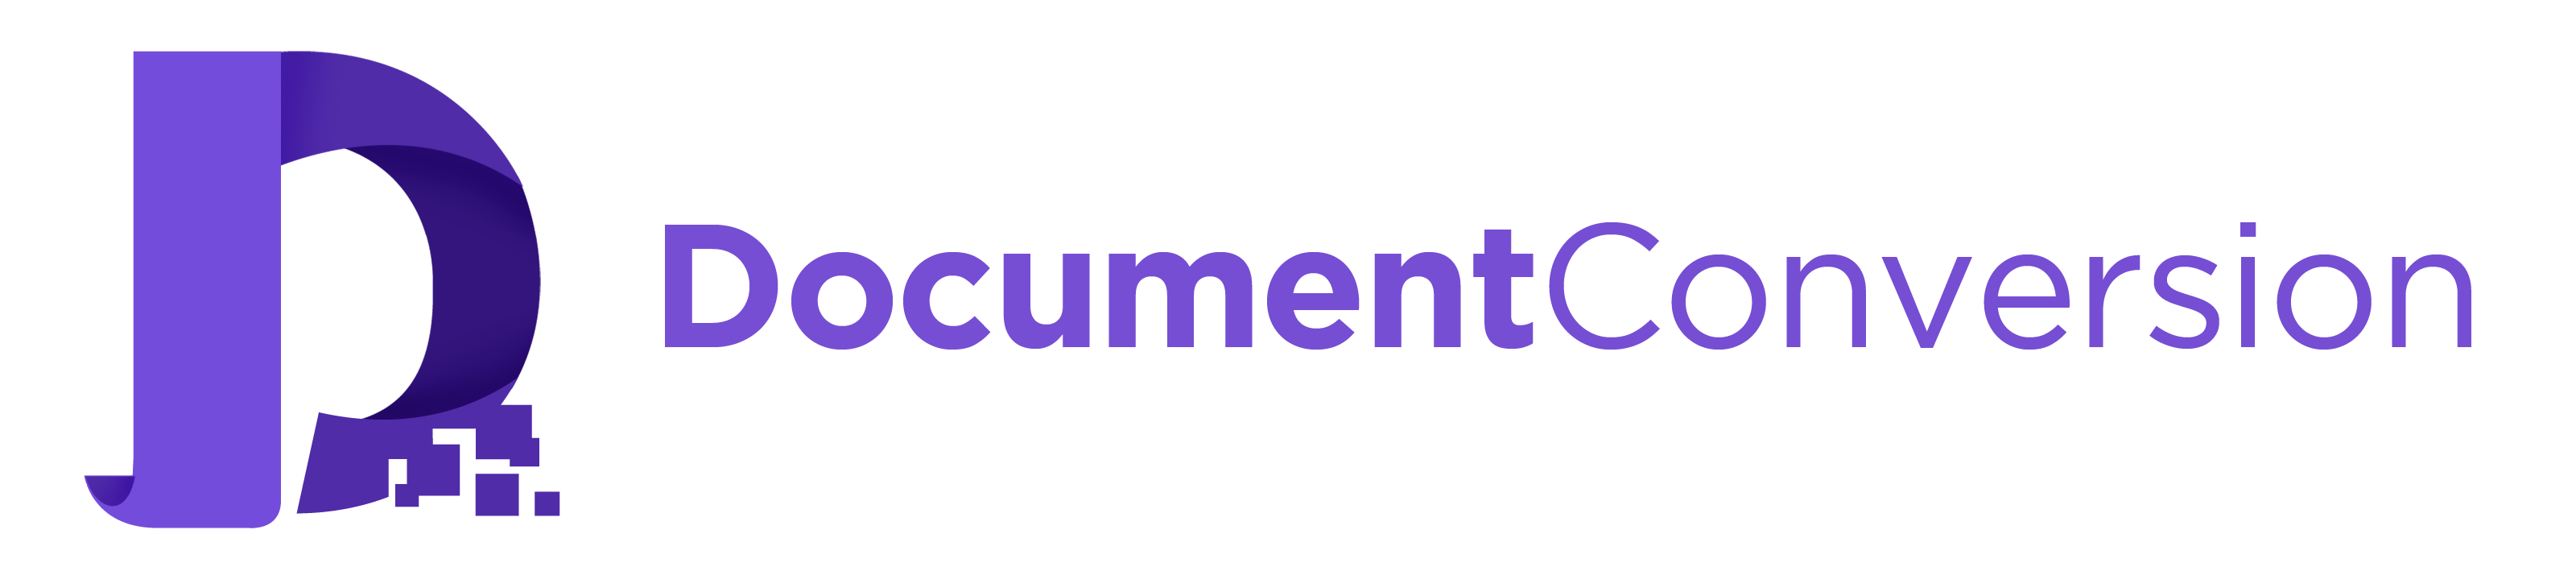 DocumentConversion